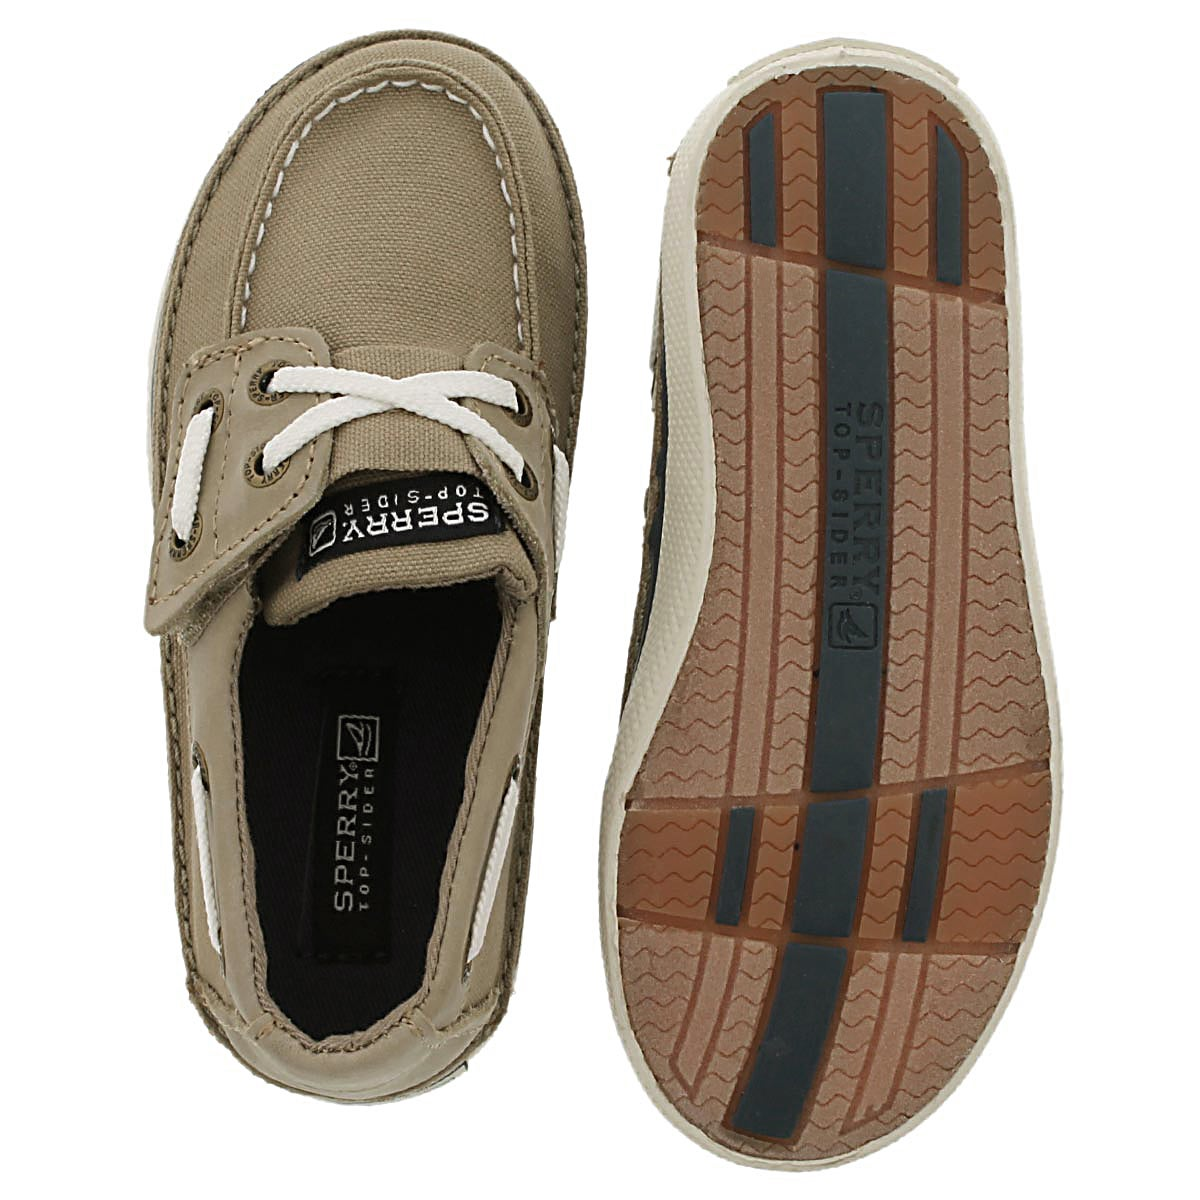 Inf Cruz Jr. khaki boat shoe